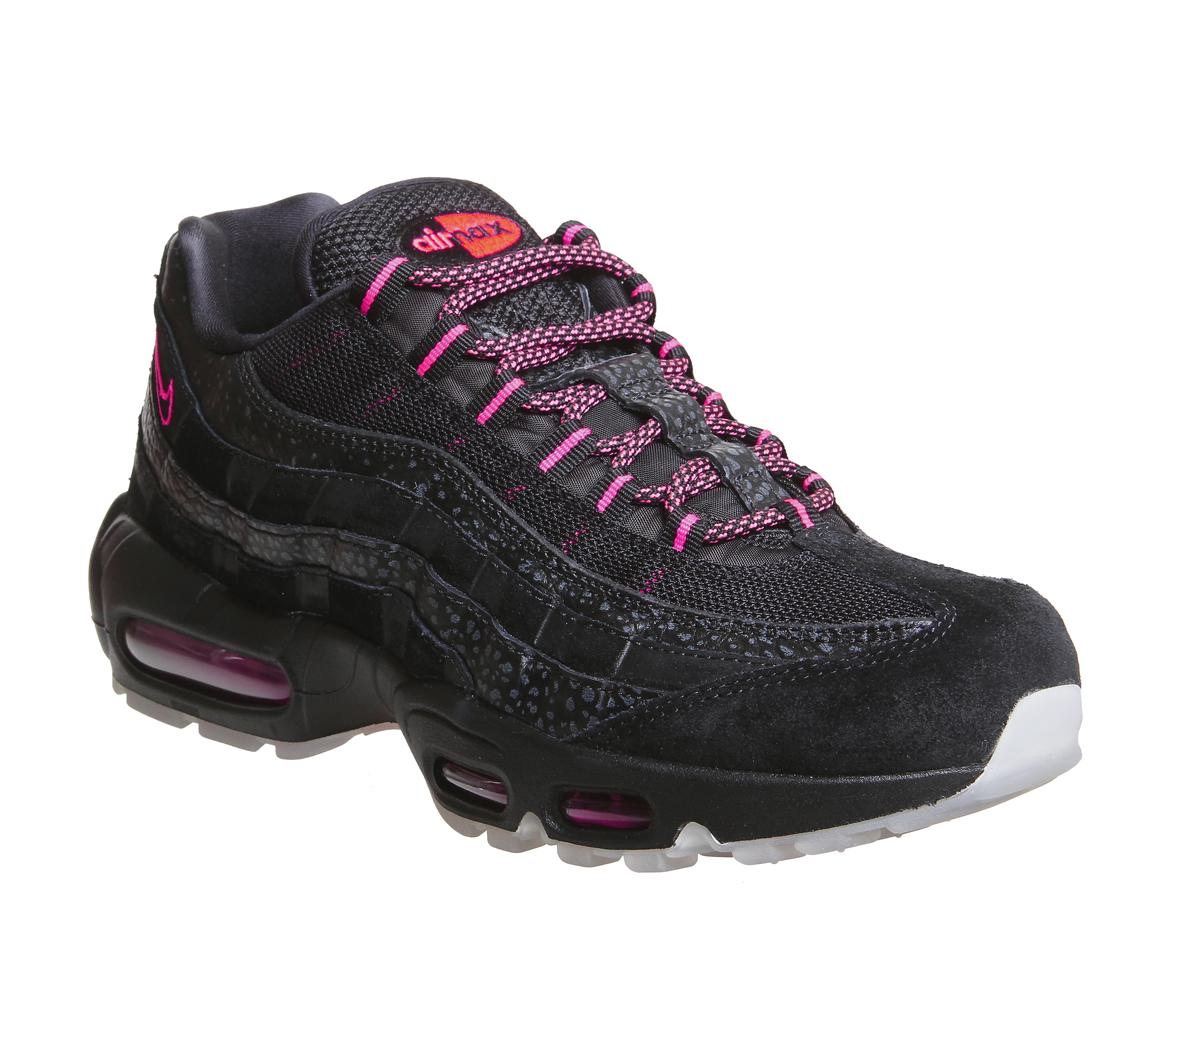 Nike Air Max 95 Trainers Black Infrared